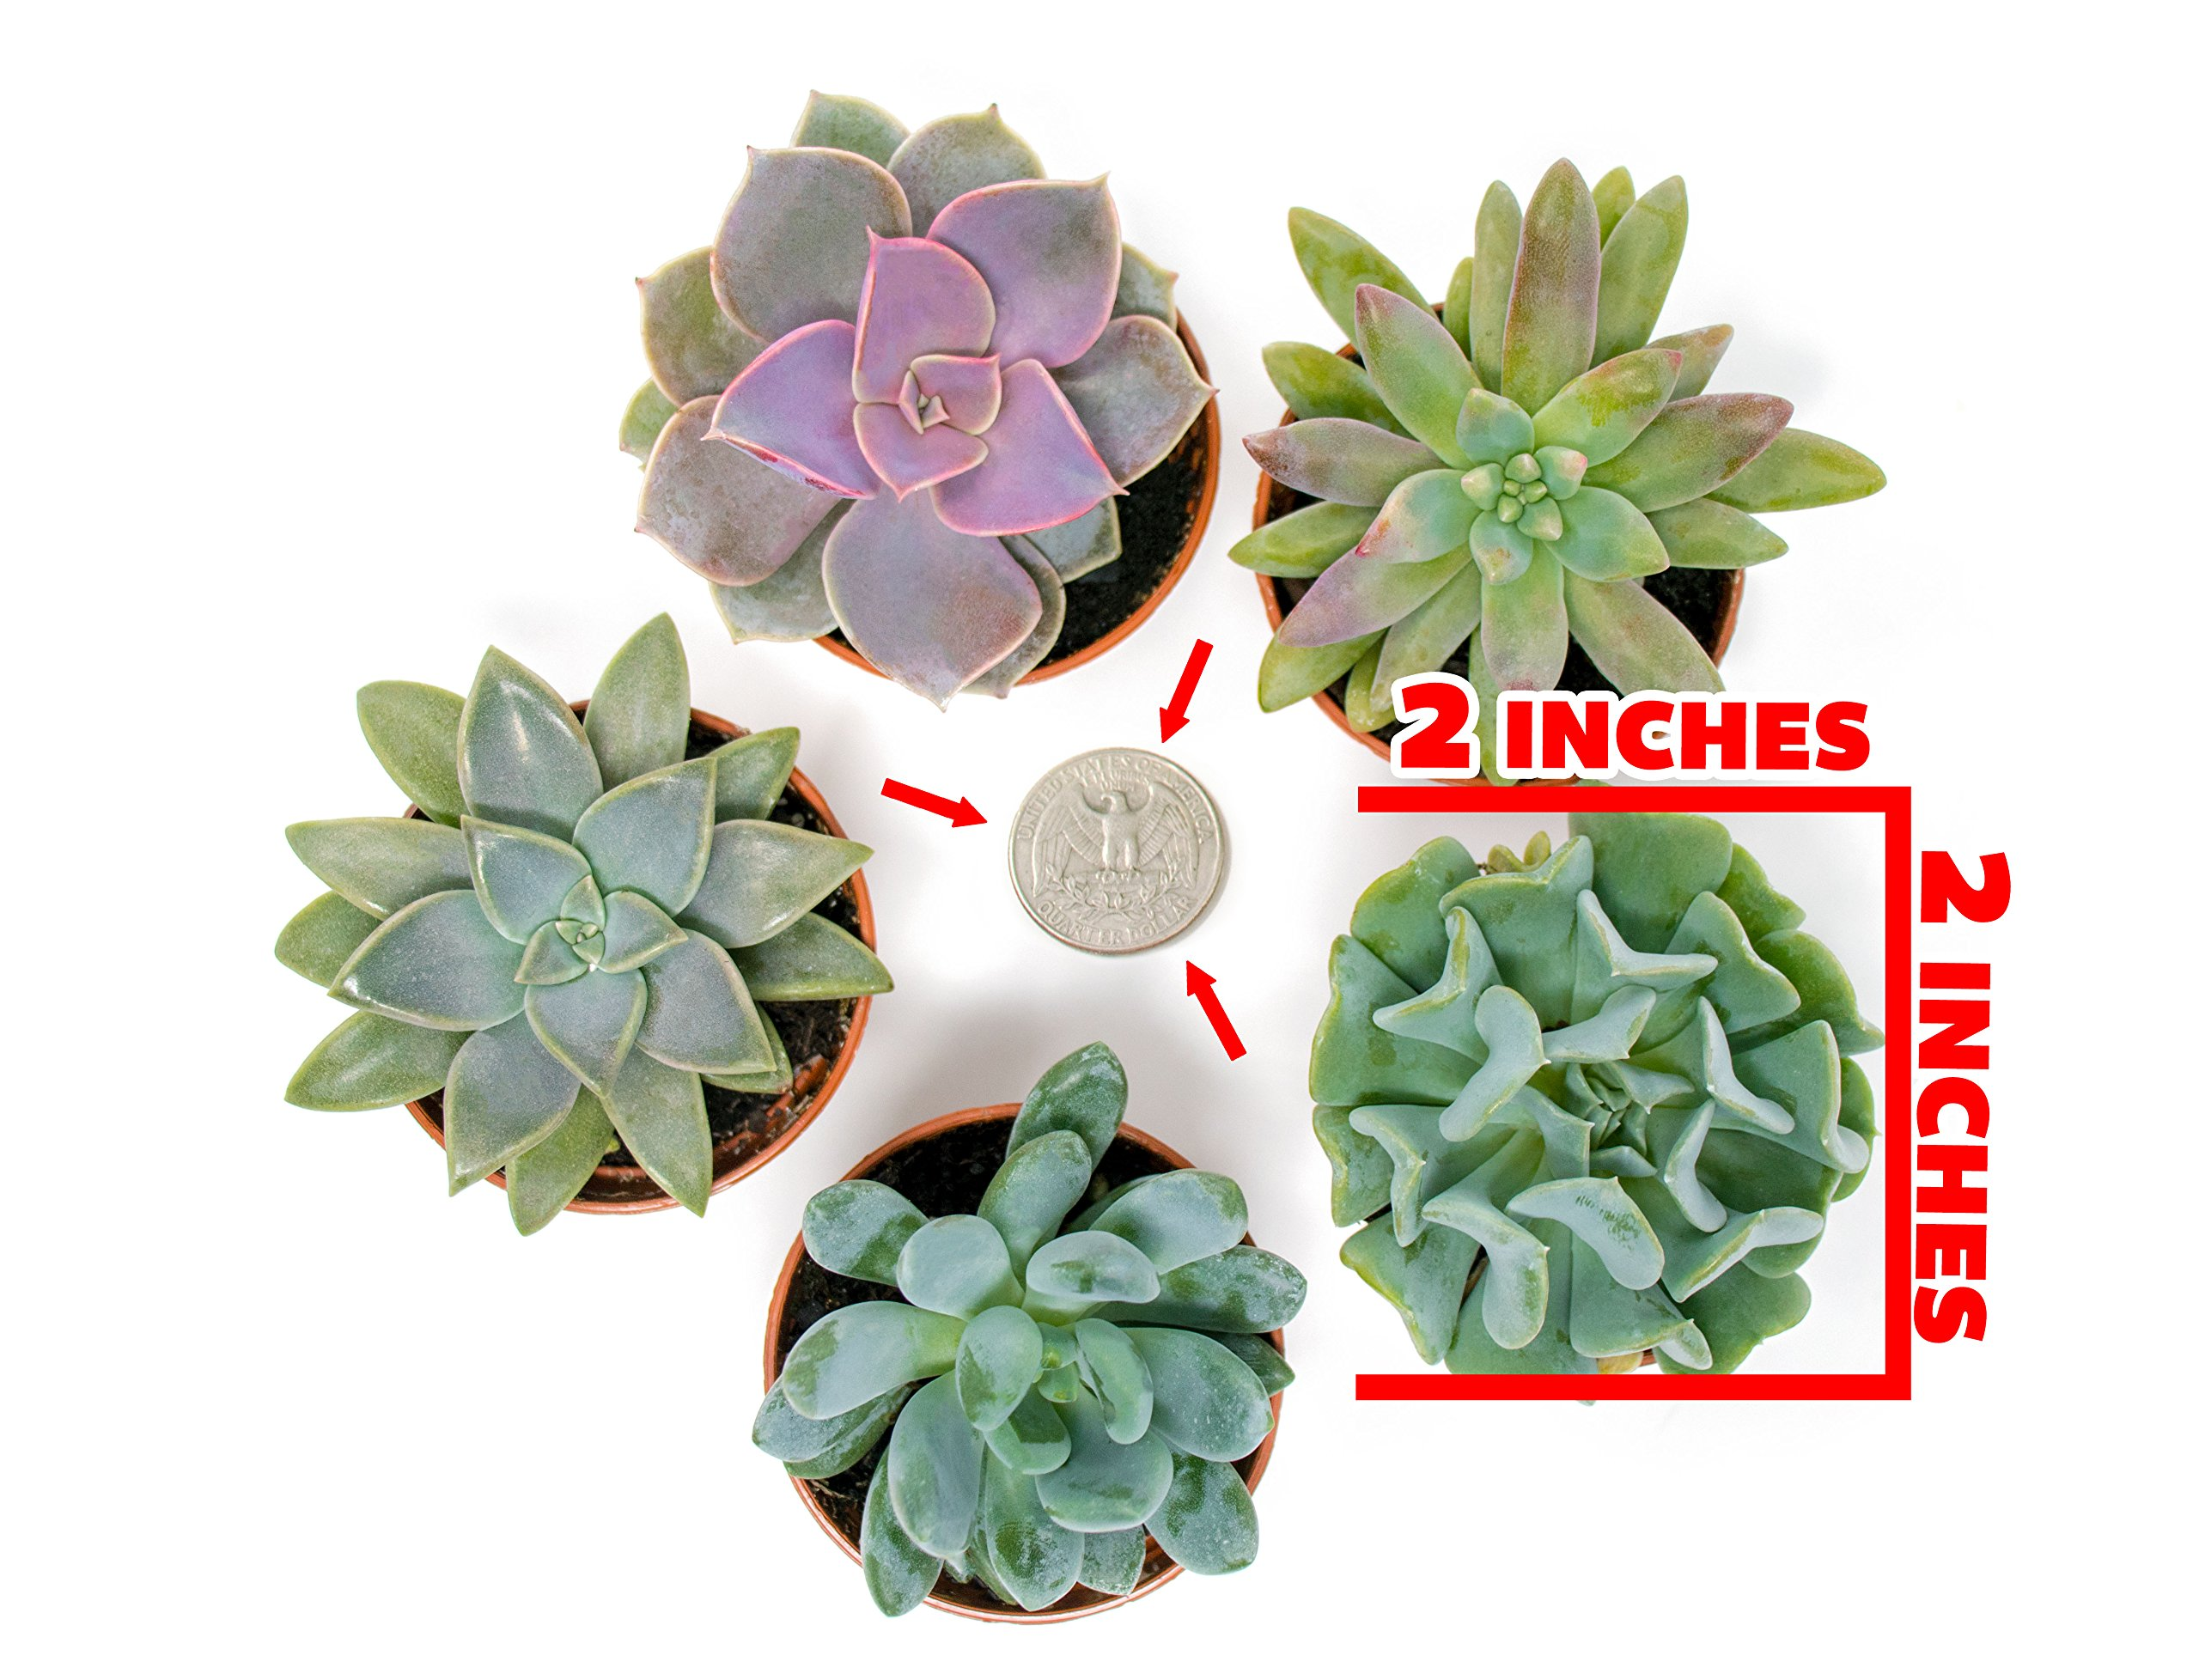 Succulent Plants (20 Pack) Fully Rooted in Planter Pots with Soil | Real Live Potted Succulents / Unique Indoor Cactus Decor by Plants for Pets 3 HAND SELECTED: Every pack of succulents we send is hand-picked. You will receive a unique collection of species that are fully rooted and similar to the product photos. Note that we rotate our nursery stock often, so the exact species we send changes every week. THE EASIEST HOUSE PLANTS: More appealing than artificial plastic or fake faux plants, and care is a cinch. If you think you can't keep houseplants alive, you're wrong; our succulents don't require fertilizer and can be planted in a decorative pot of your choice within seconds. DIY HOME DECOR: The possibilities are only limited by your imagination; display them in a plant holder, a wall mount, a geometric glass vase, or even in a live wreath. Because of their amazingly low care requirements, they can even make the perfect desk centerpiece for your office.